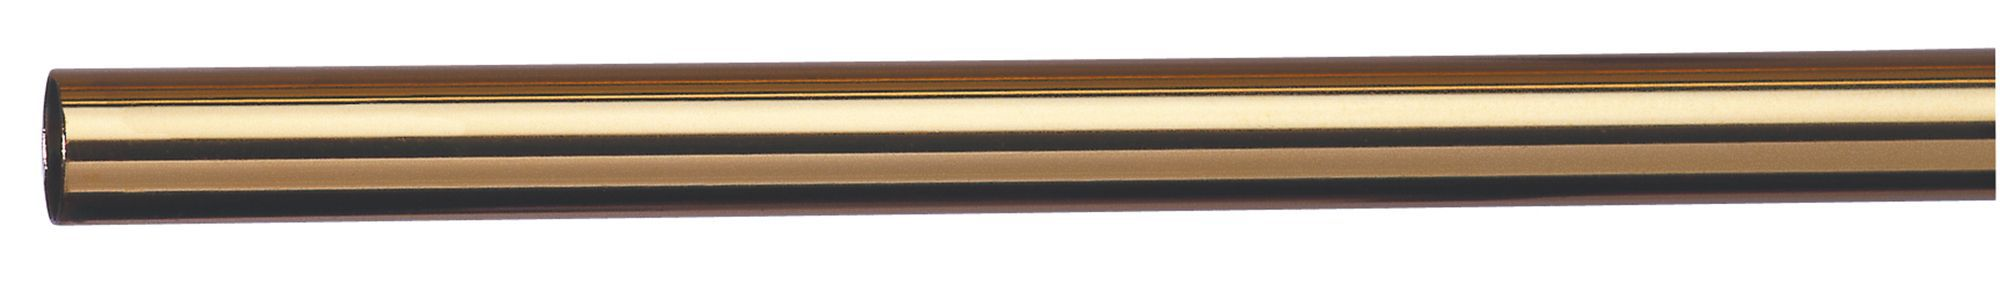 Colorail Brass Effect Steel Round Tube (l)0.91m